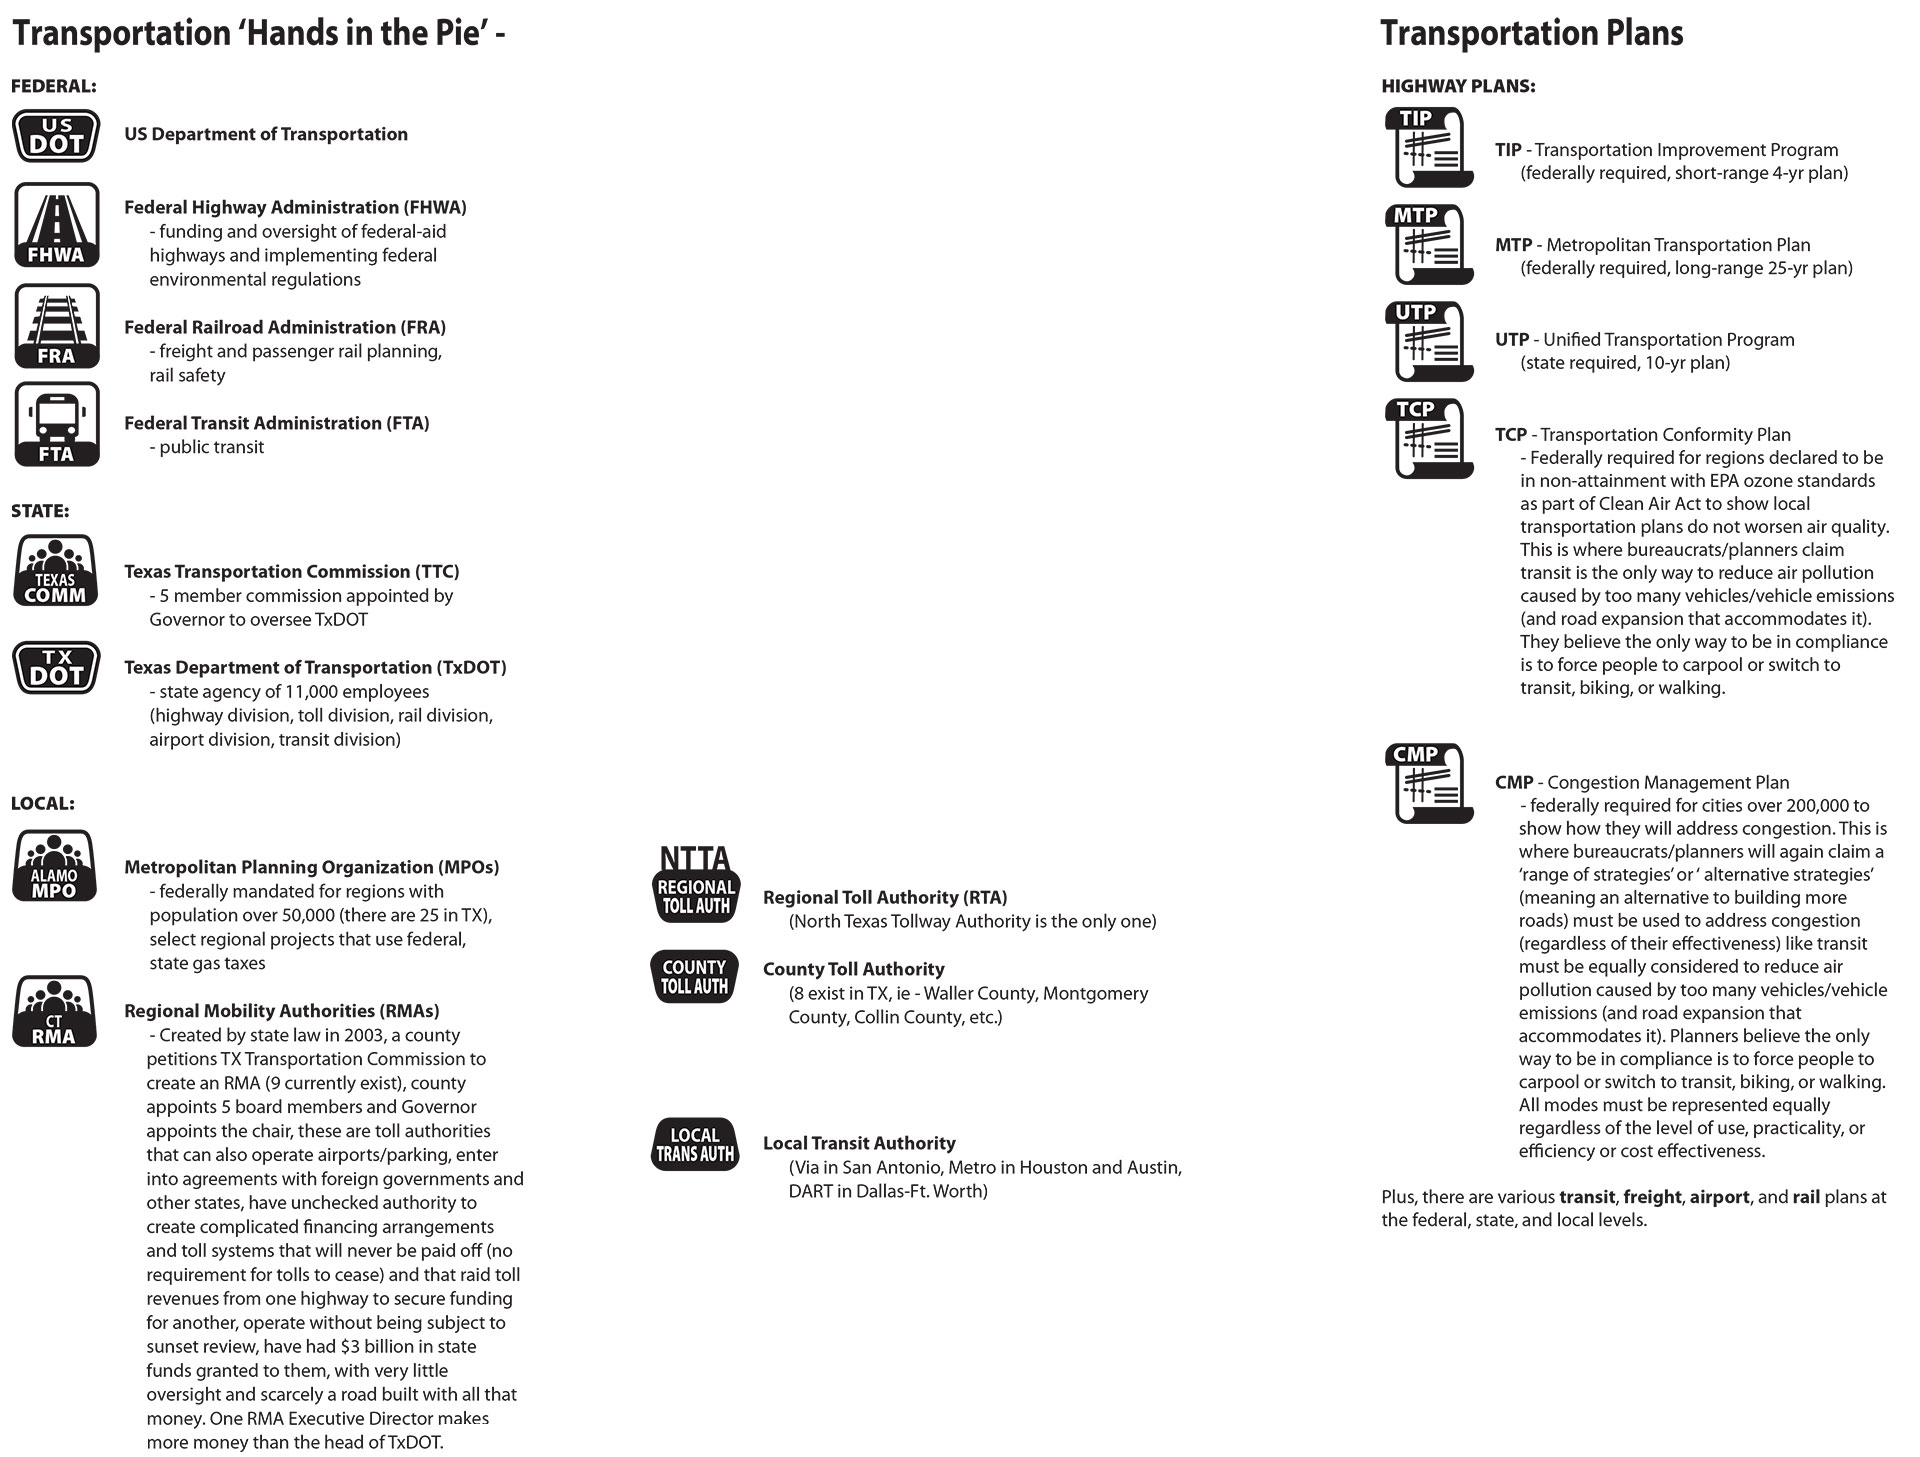 Transportation101 Key - click to view full size